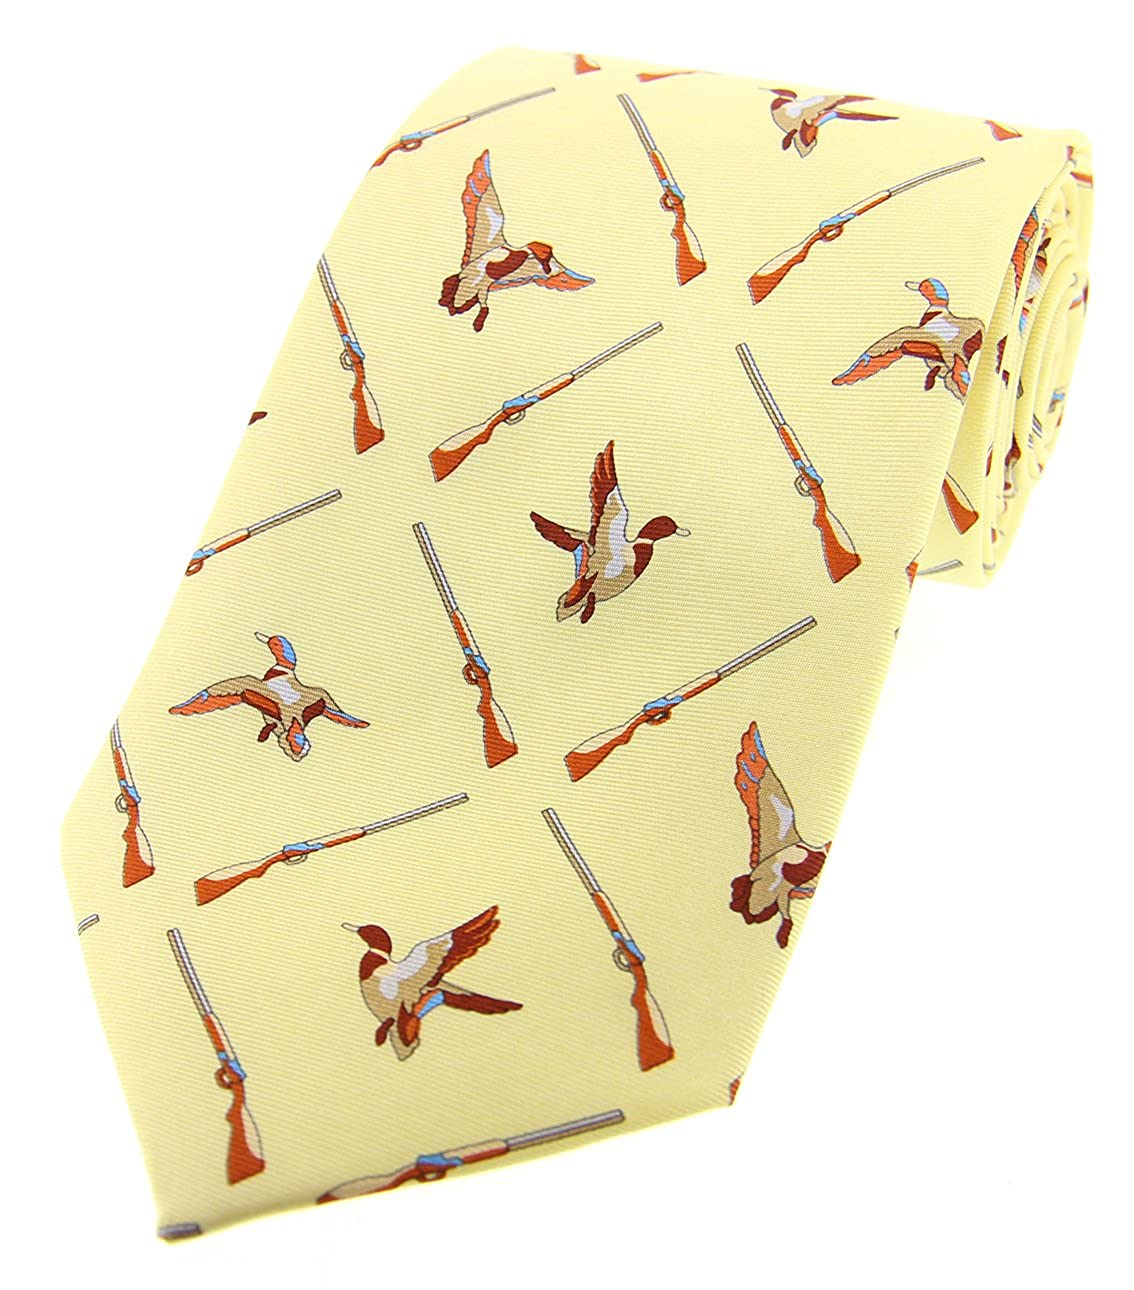 Soprano amarillo pastel Flying patos país seda corbata: Amazon.es ...